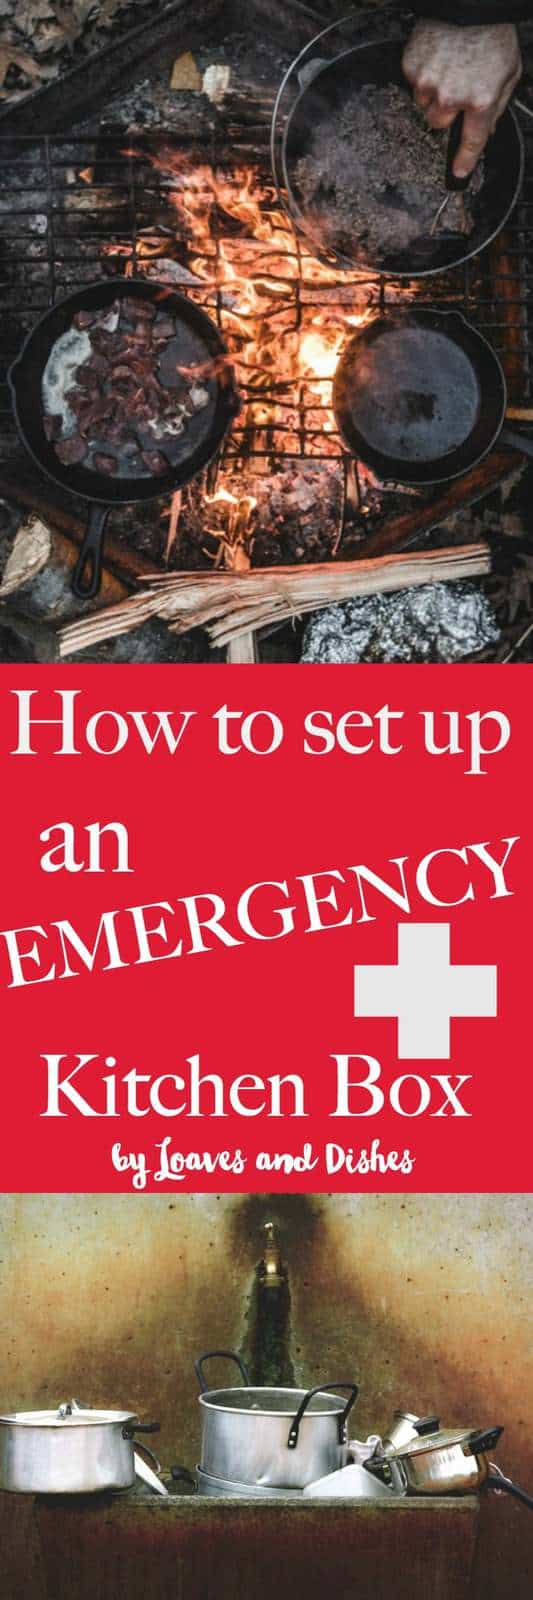 Emergency food cooking and cases are important in the event of a disaster, storm outage of electrical outage. You'll be miles ahead if you are ready with this emergency preparedness guide for your kitchen and free printable.